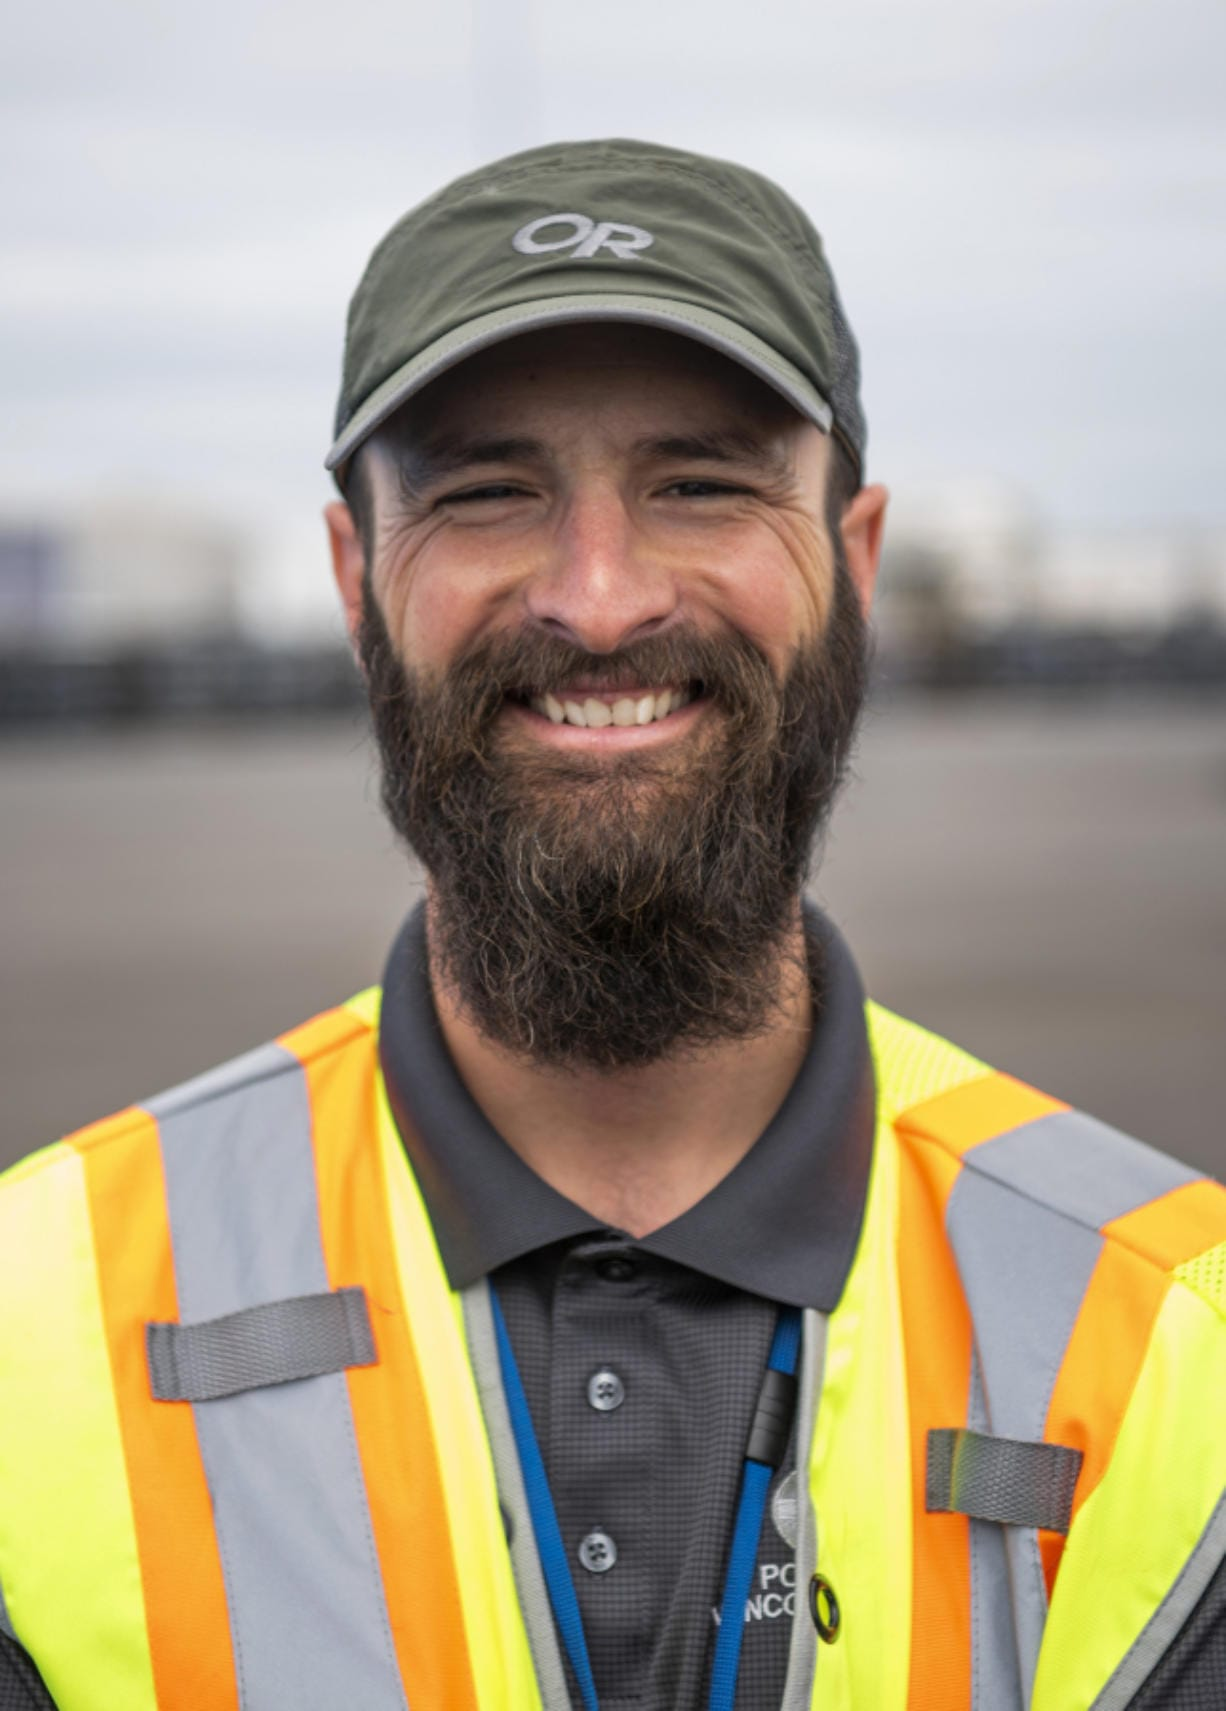 Phillip Martello studied environmental geology science at Slippery Rock University in Pennsylvania. After working at Arizona's Department of Environmental Quality, he sought opportunities in the Pacific Northwest. He has worked as an environmental specialist at the Port of Vancouver USA for almost seven years.